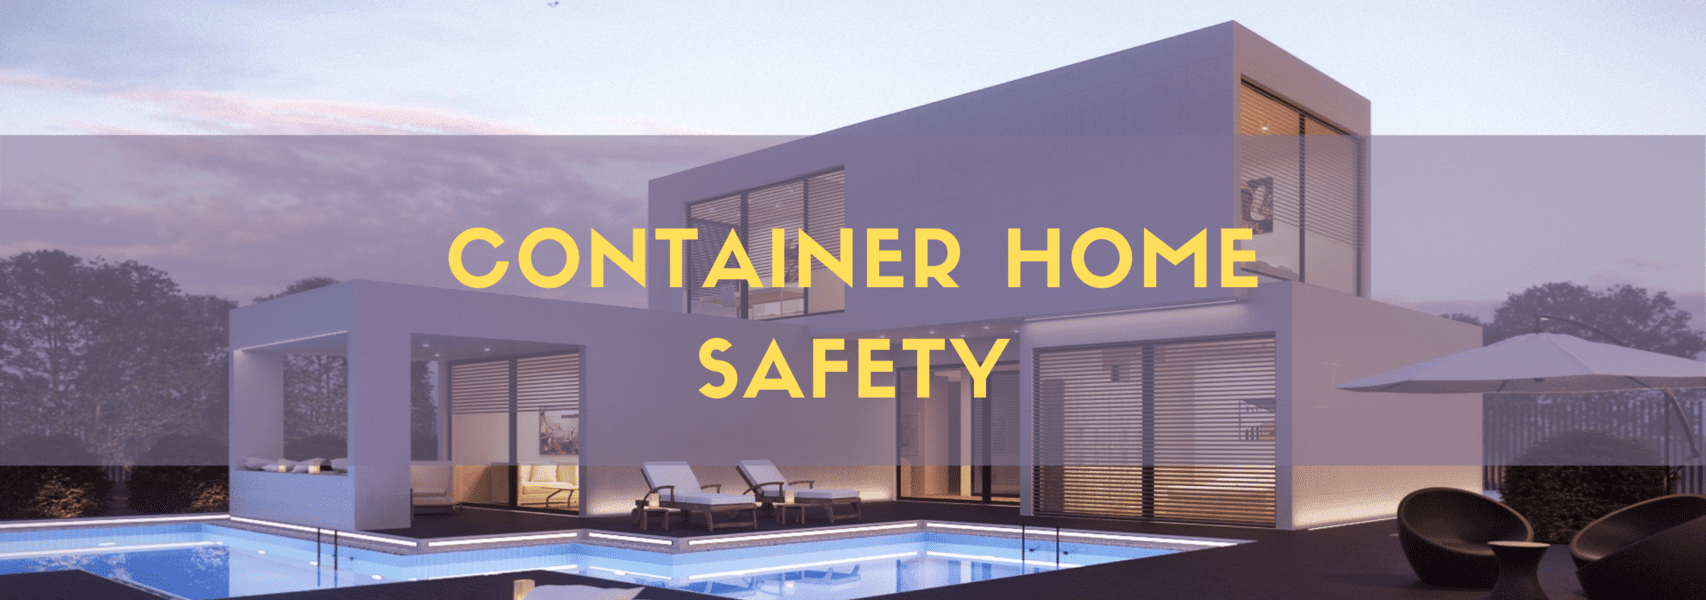 Container Home Safety